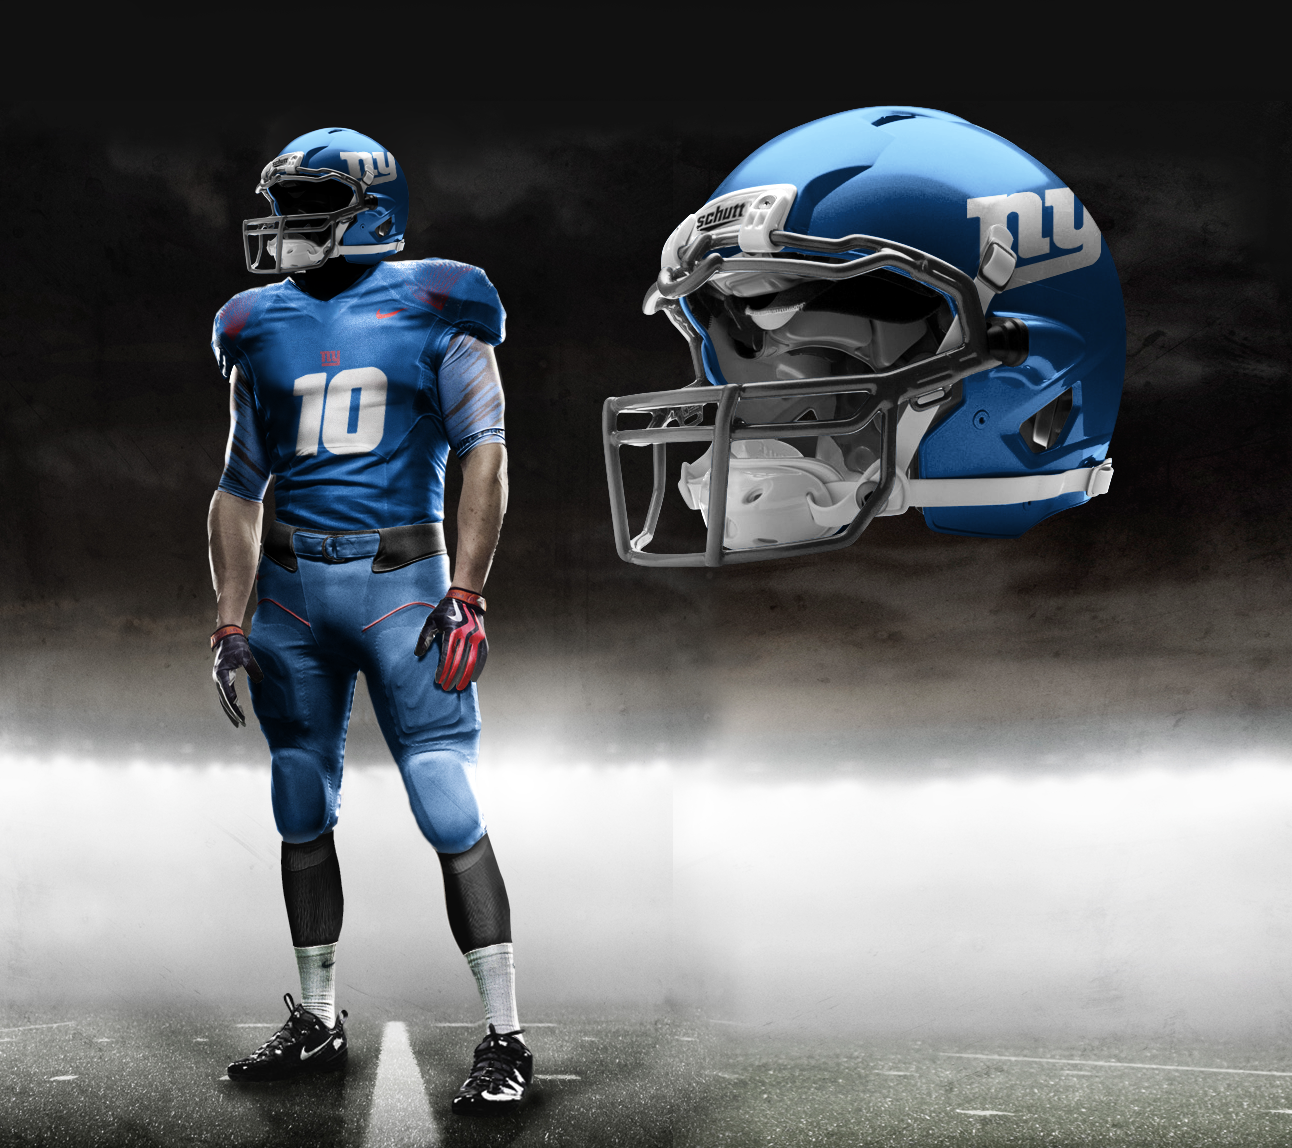 Nfl: Nike's New NFL Jersey's…MAJOR Changes